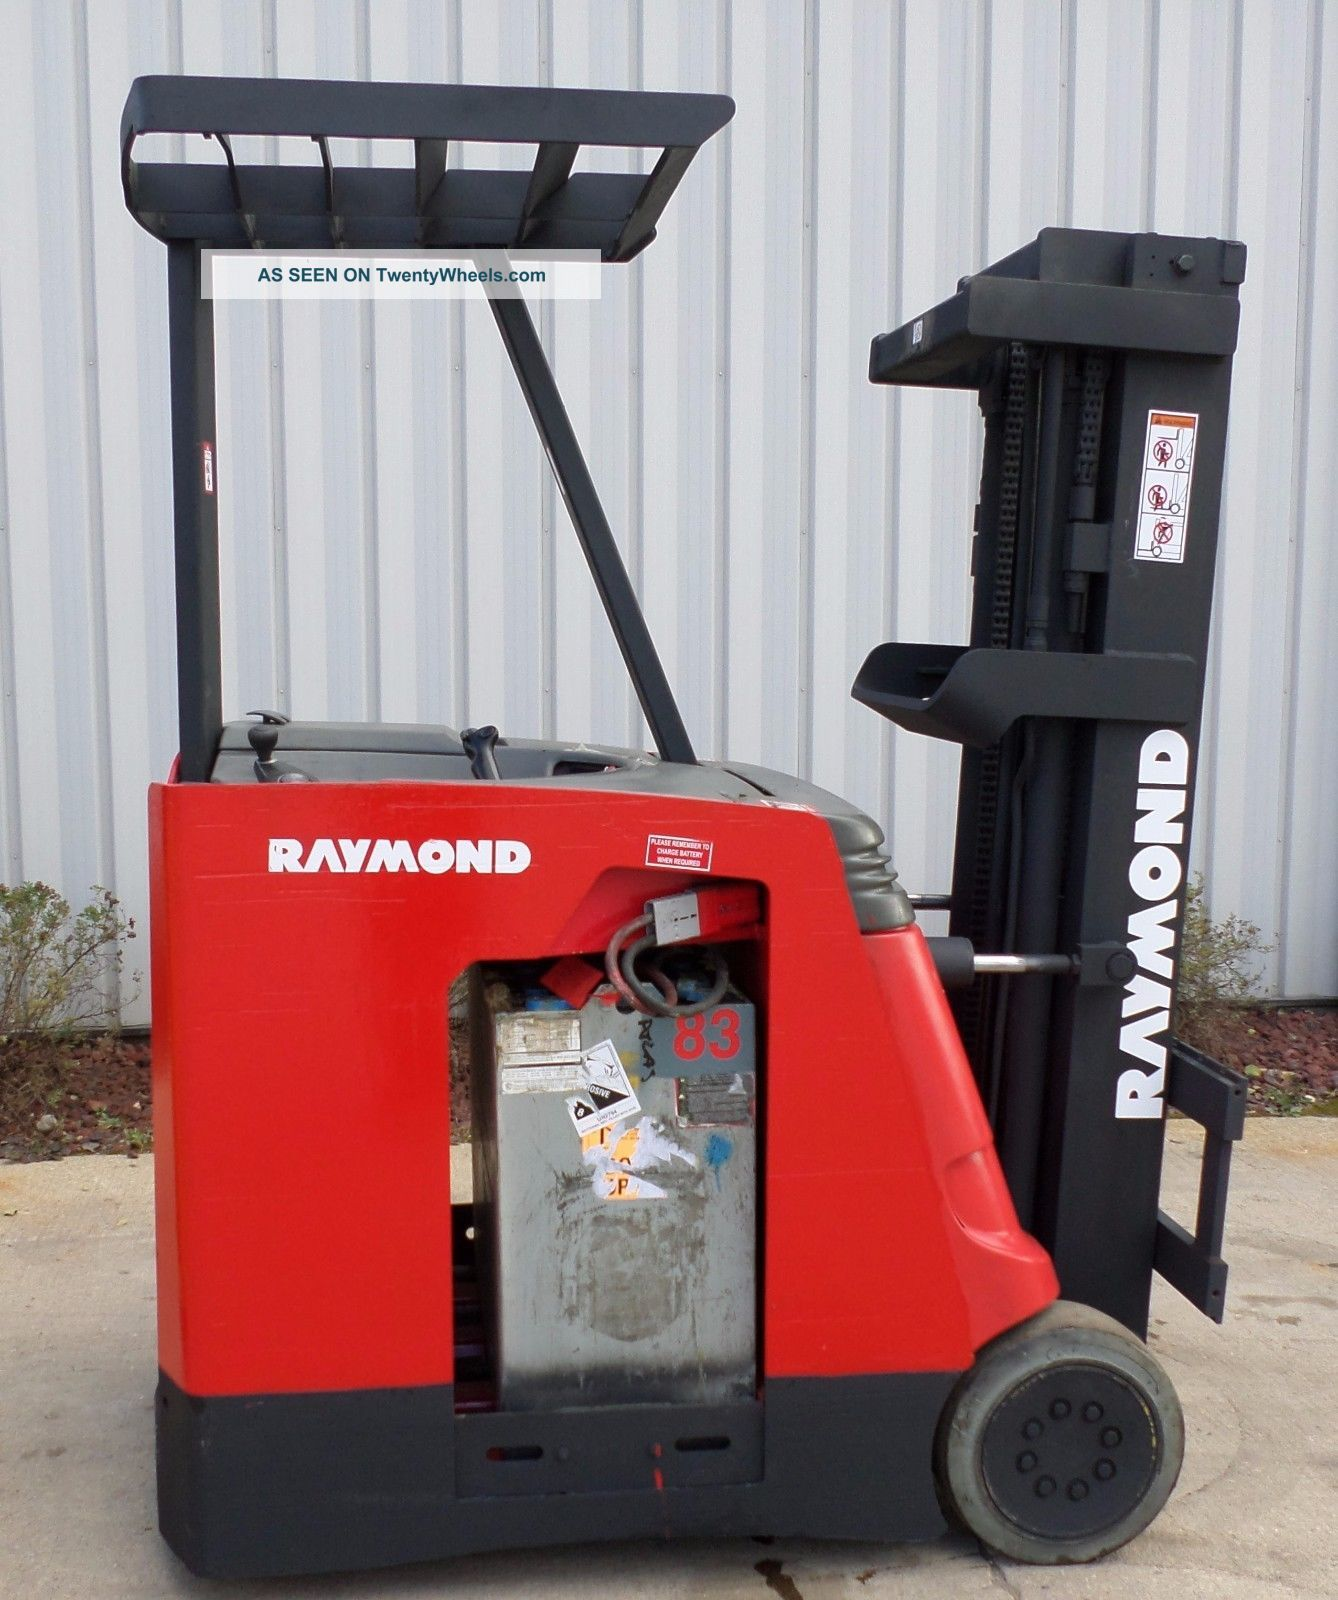 Raymond Model R30c30tt (2006) 3000lbs Capacity Great Docker Electric Forklift Forklifts photo